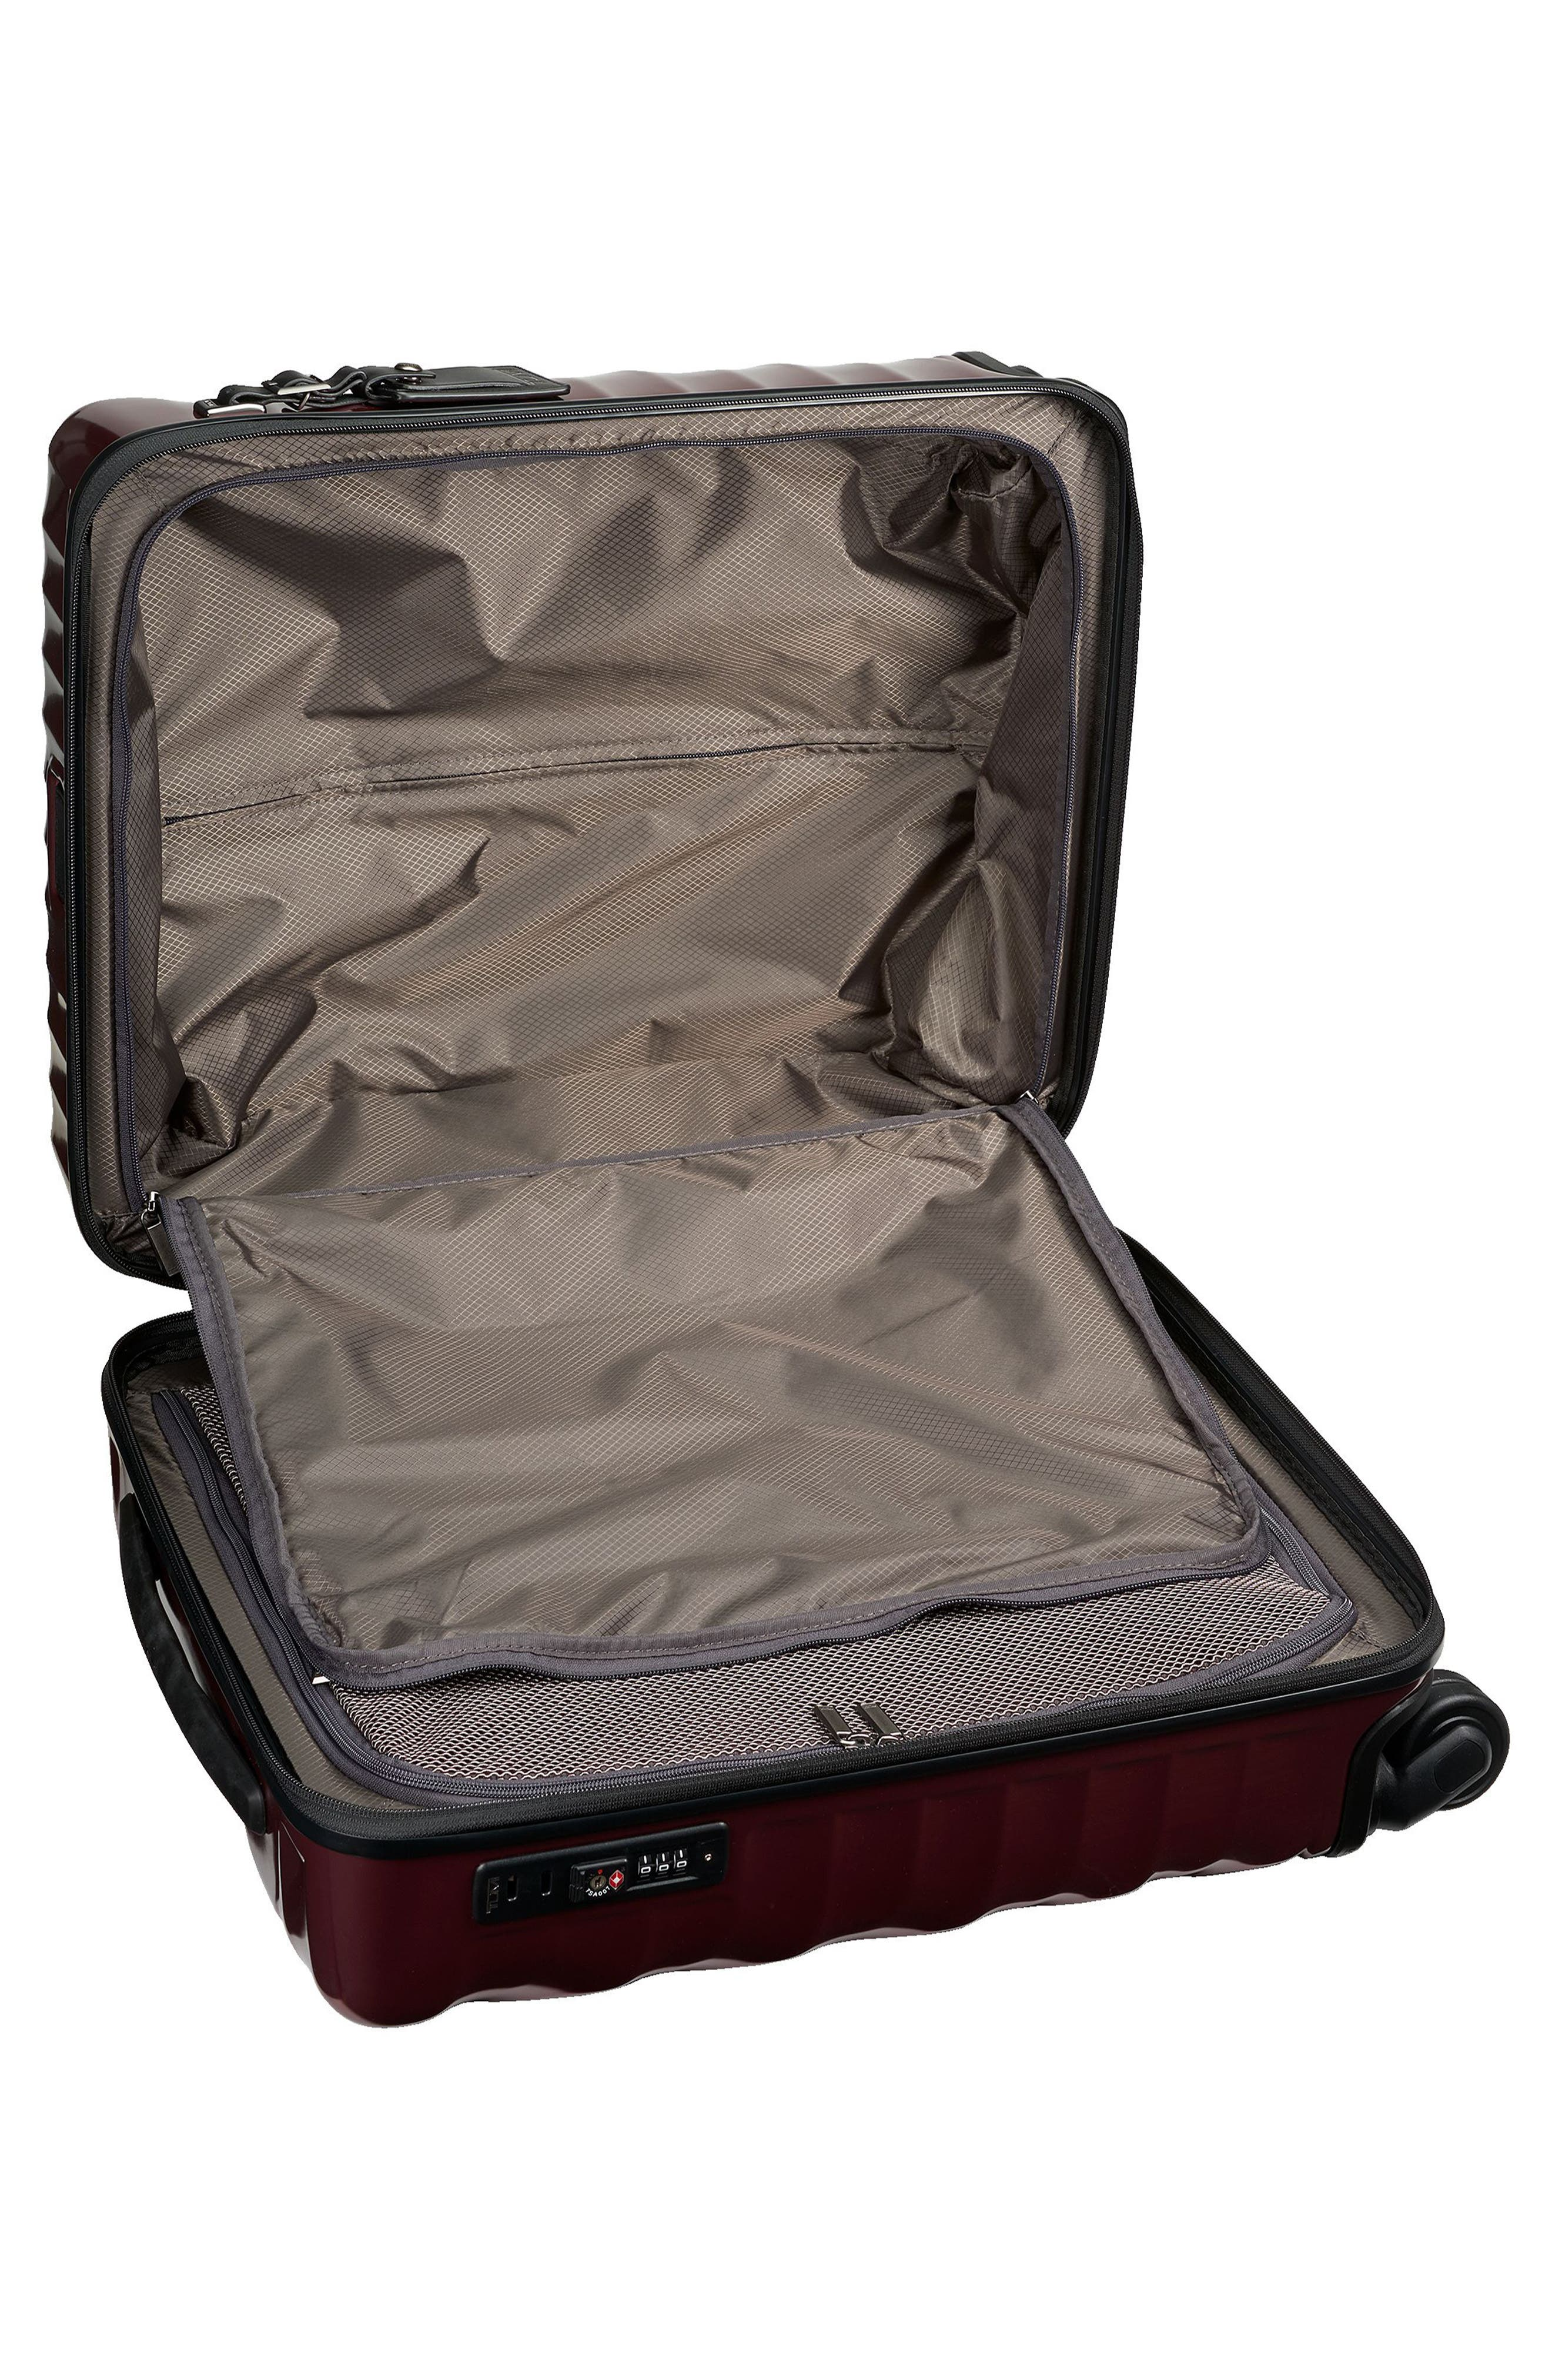 19 Degree 22-Inch Continental Wheeled Carry-On,                             Alternate thumbnail 2, color,                             603